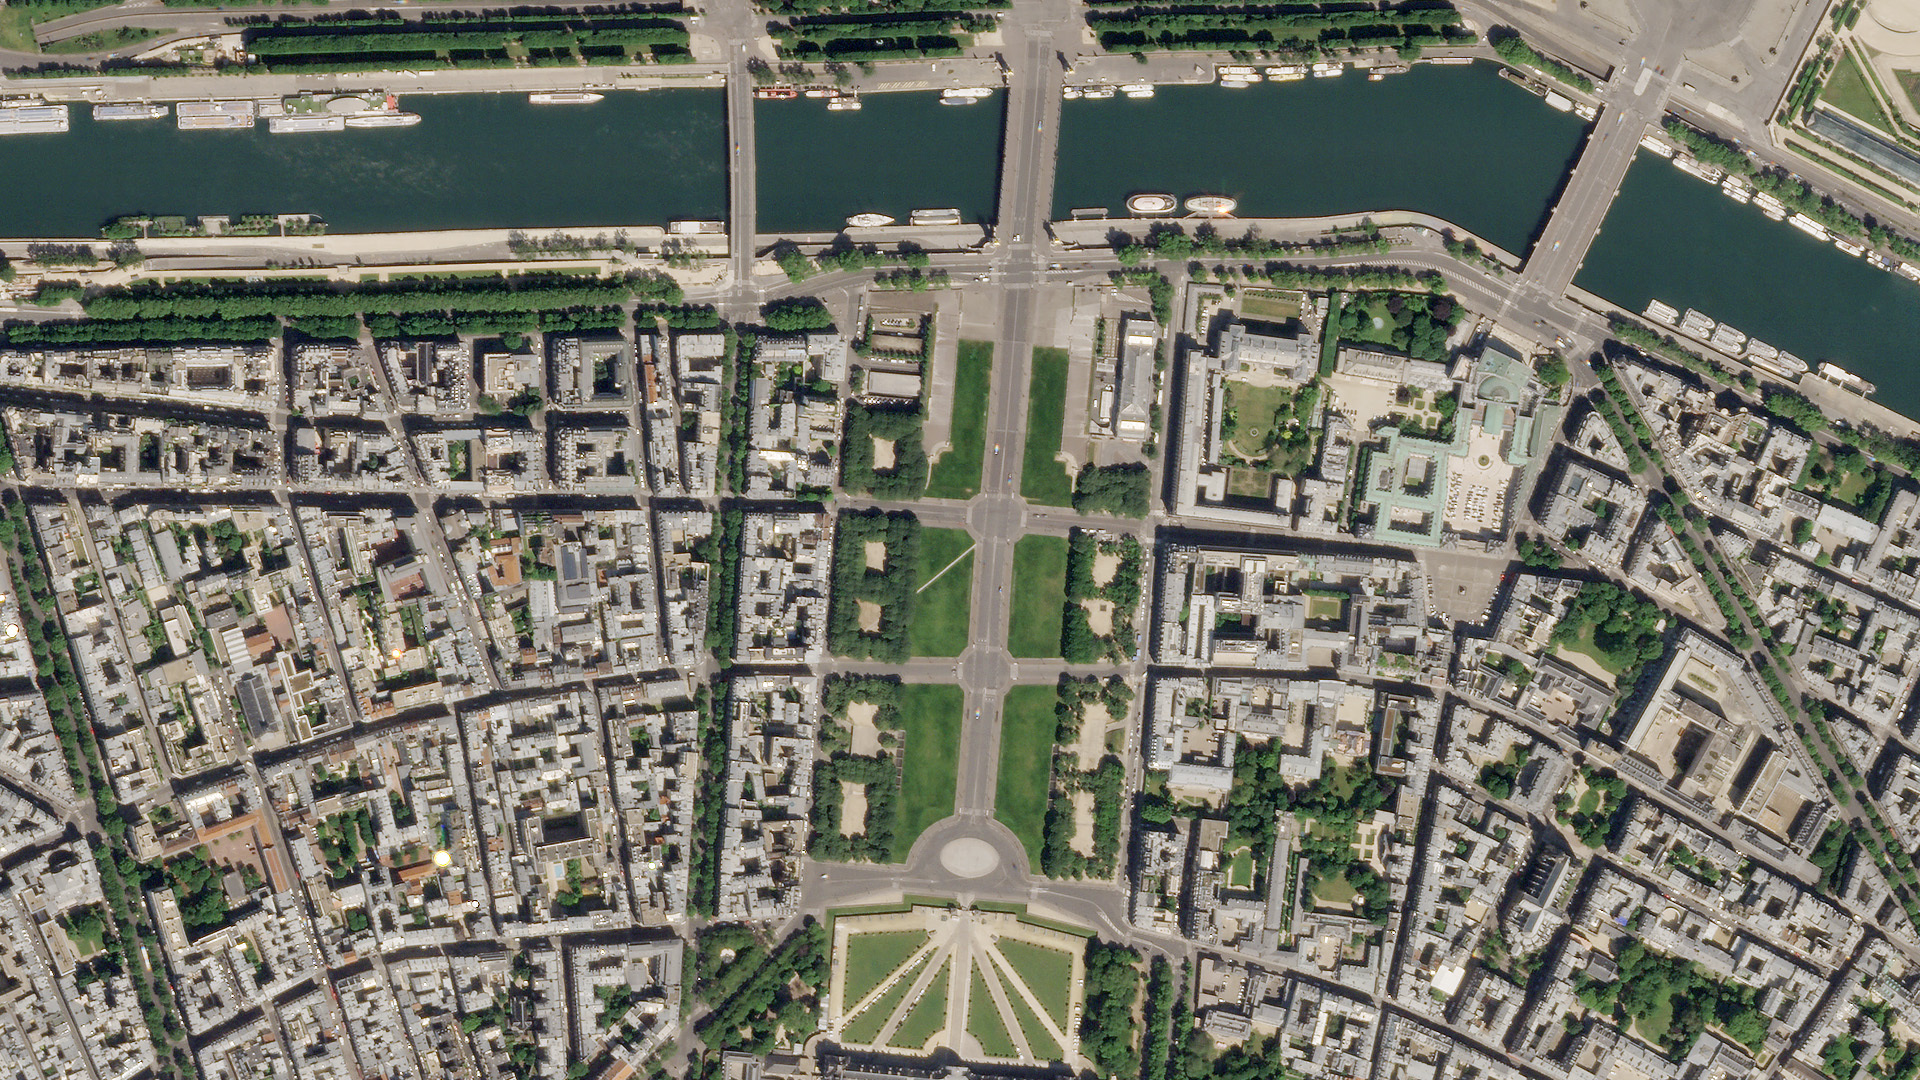 SkySat image of Paris, France, May 6, 2020 © 2020, Planet Labs Inc. All Rights Reserved.